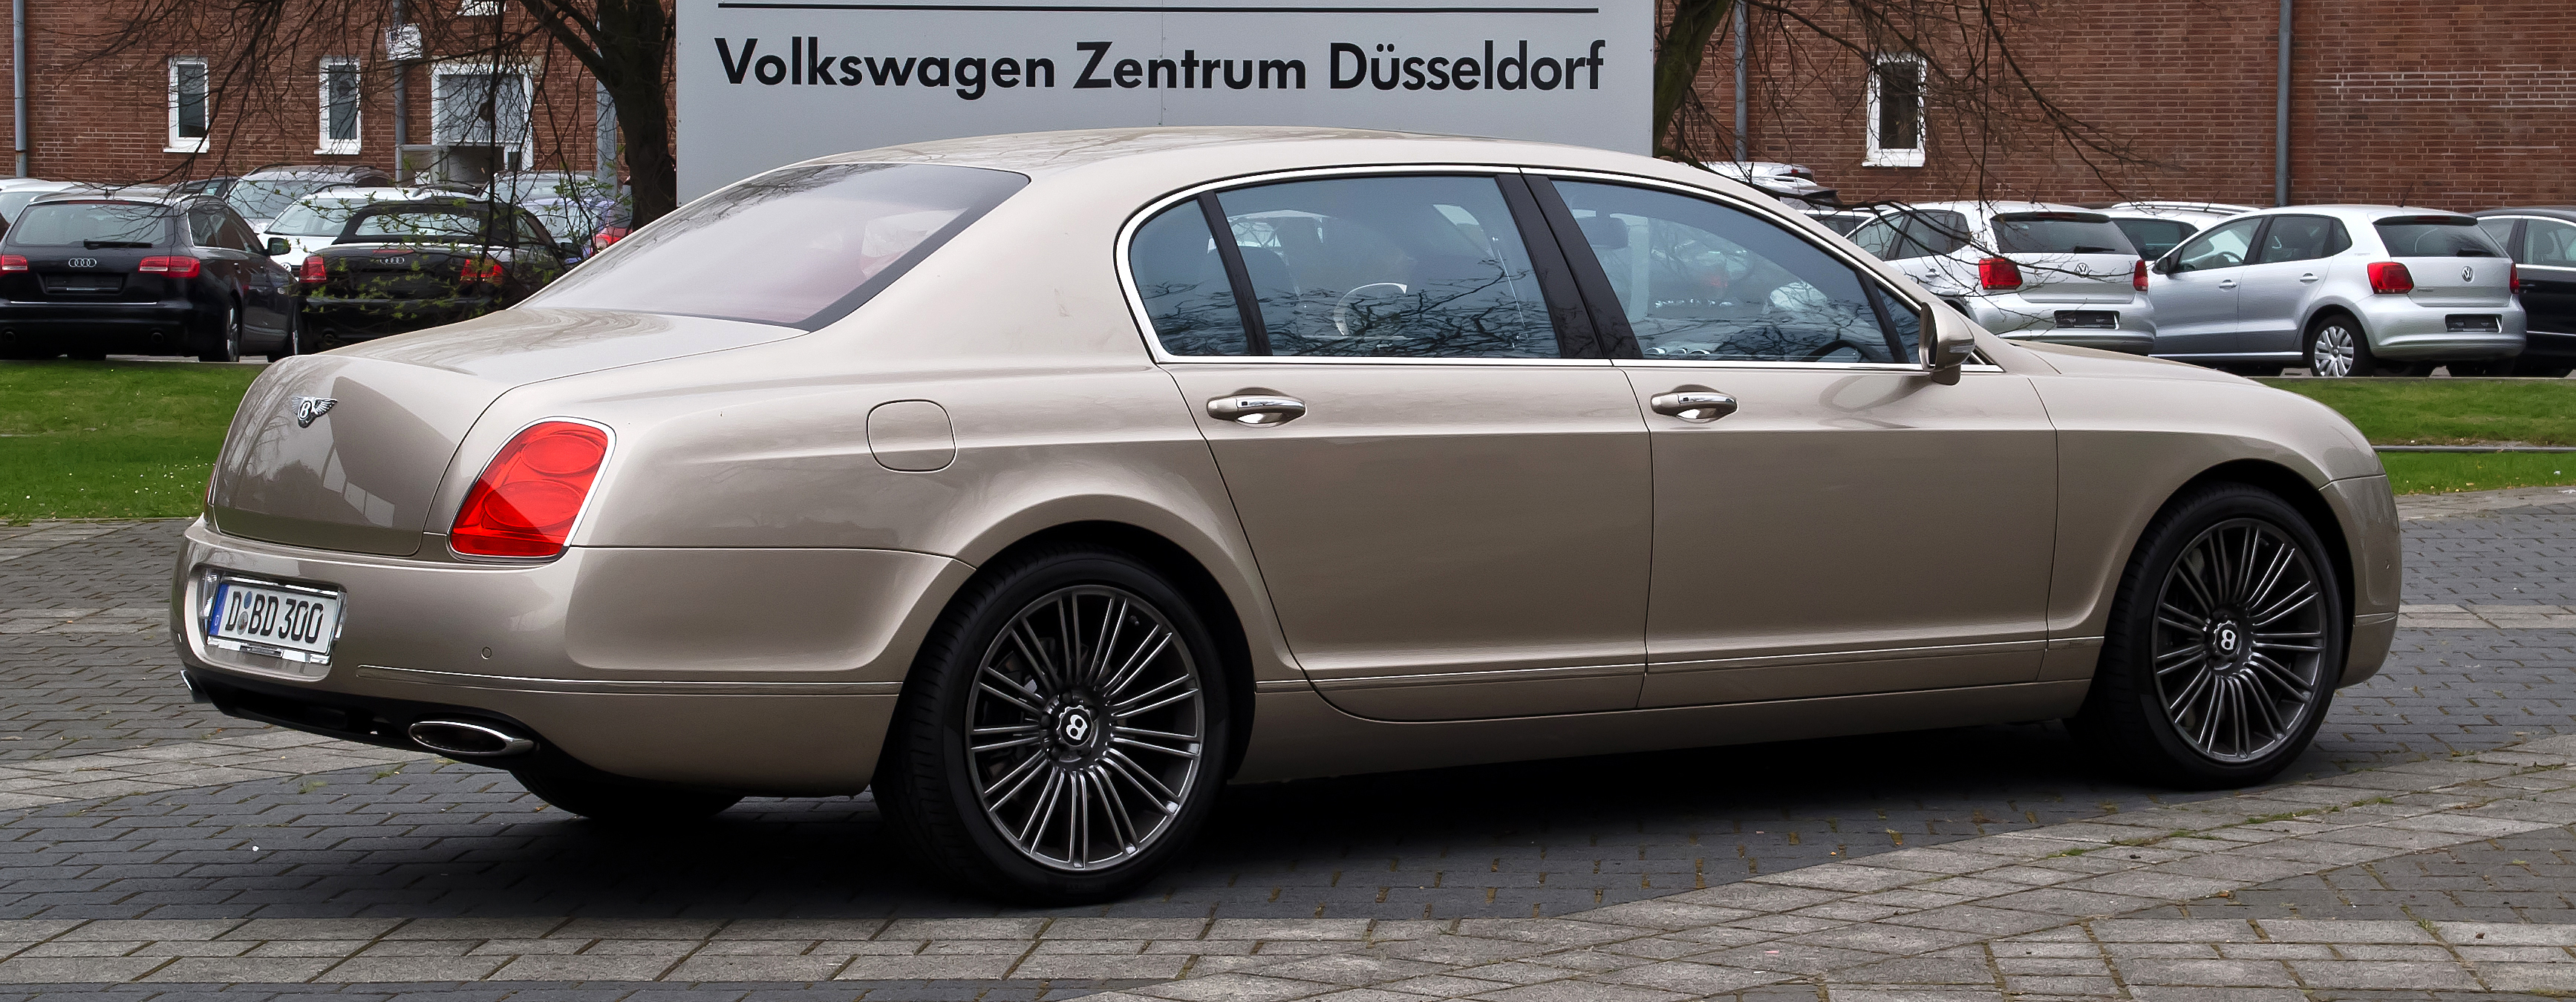 File:Bentley Continental Flying Spur Speed – Heckansicht, 5. April 2012, Düsseldorf.jpg ...